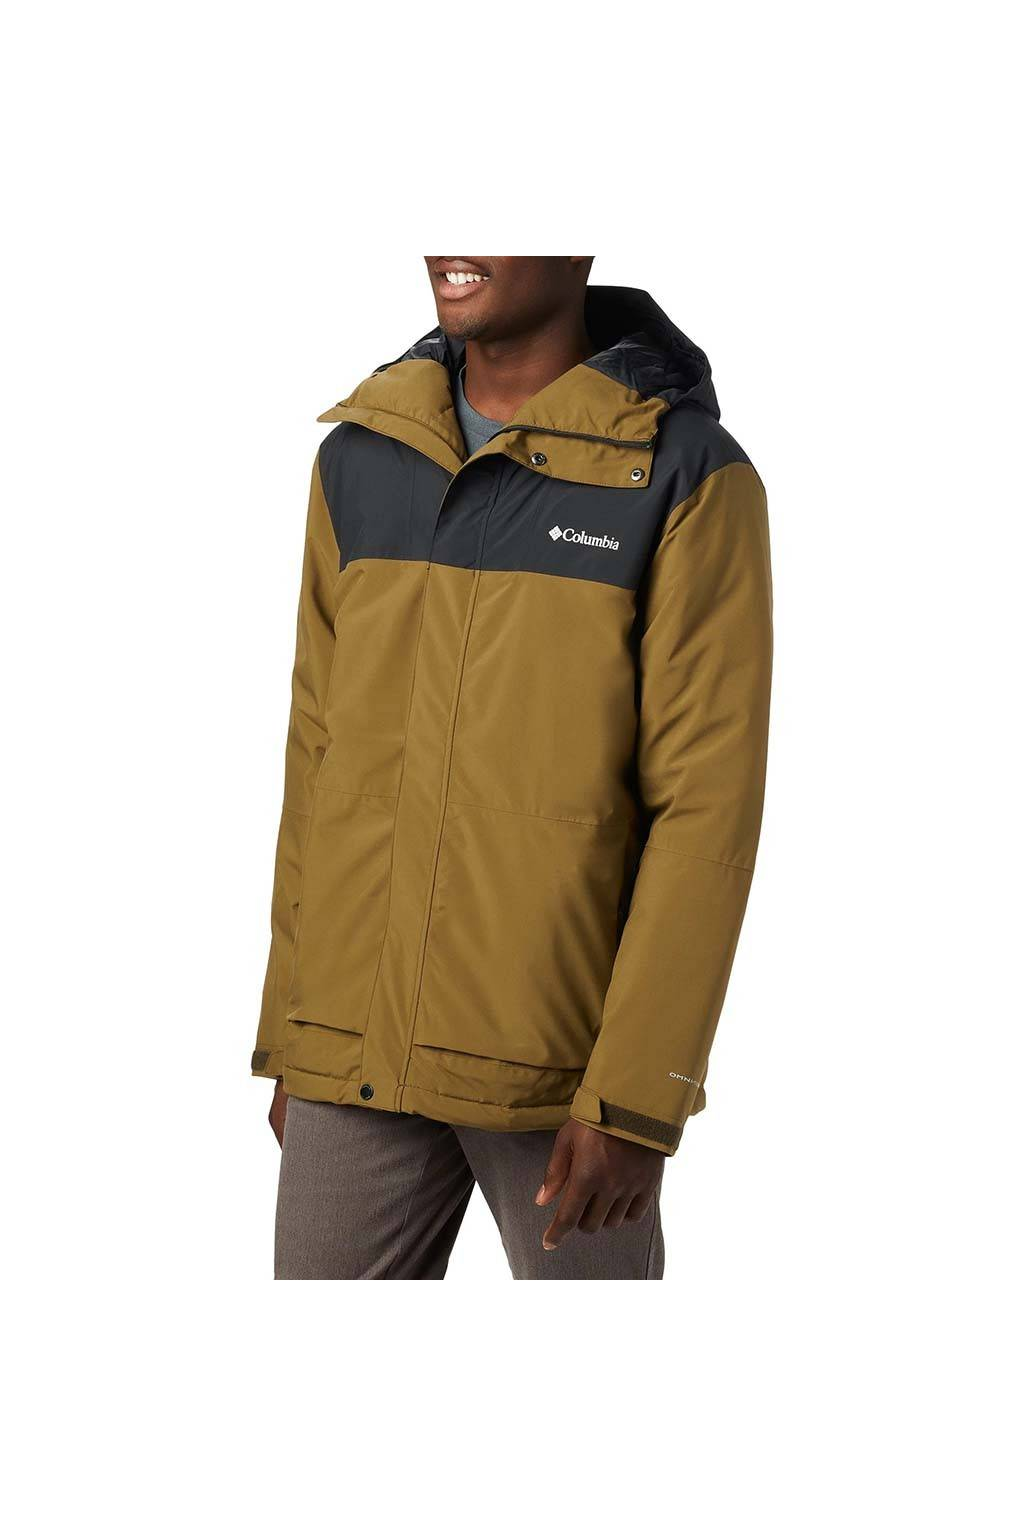 Veste Columbia Horizon Explorer Insulated medinapiel.es